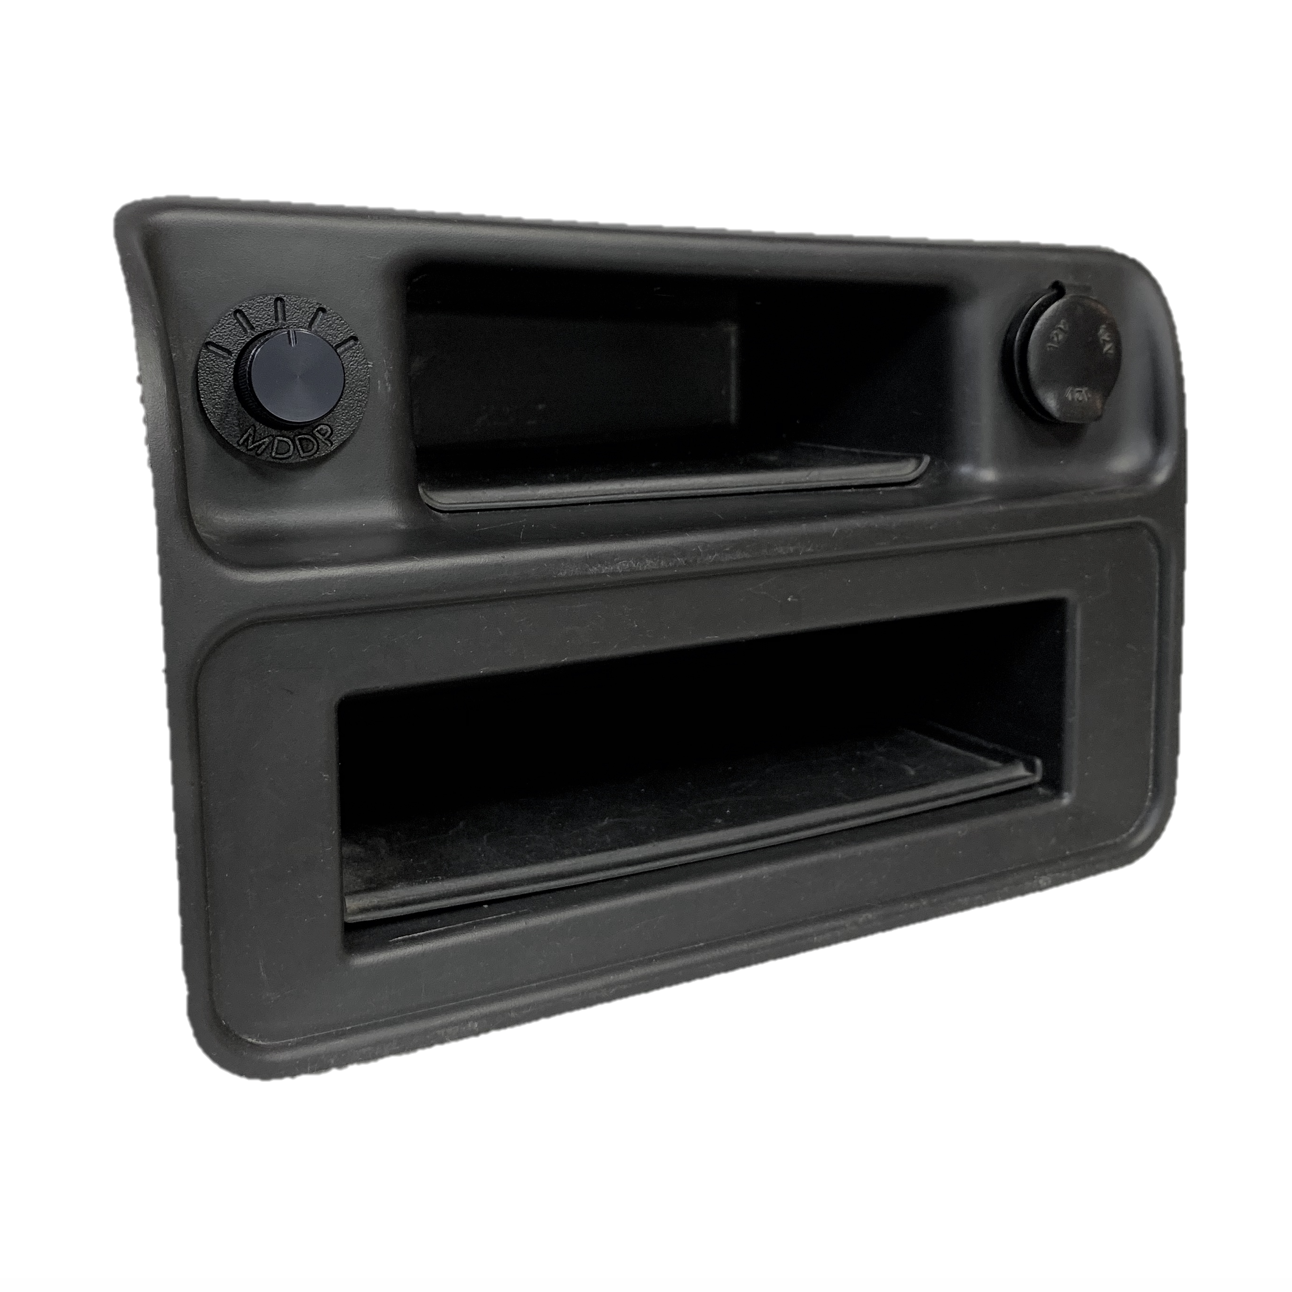 01-07 GM DSP5 Switch Mount